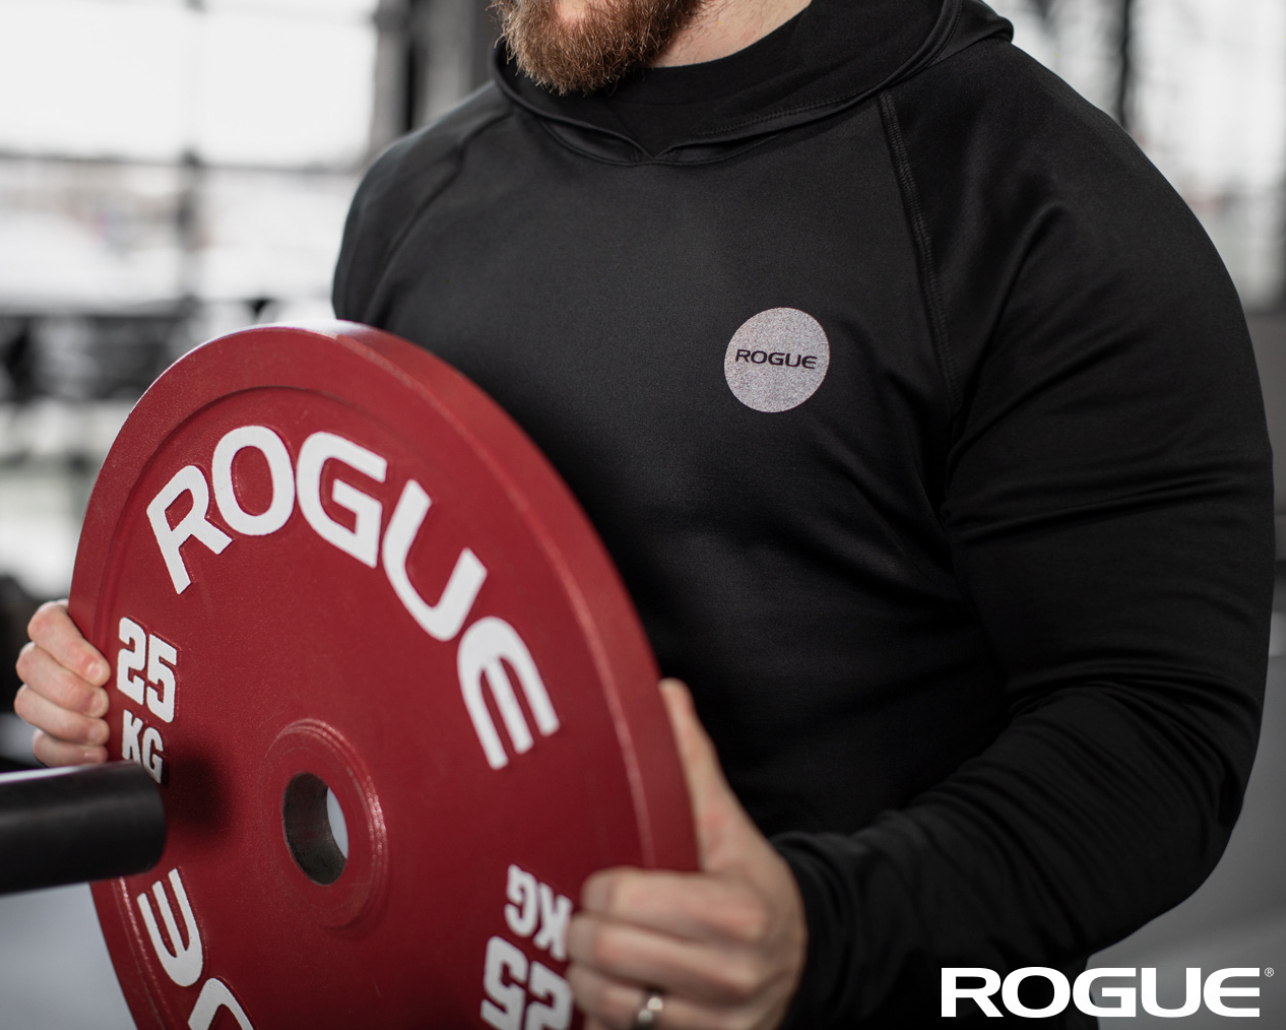 Rogue Fitness Condemns Crossfit After Ceo S George Floyd Tweet